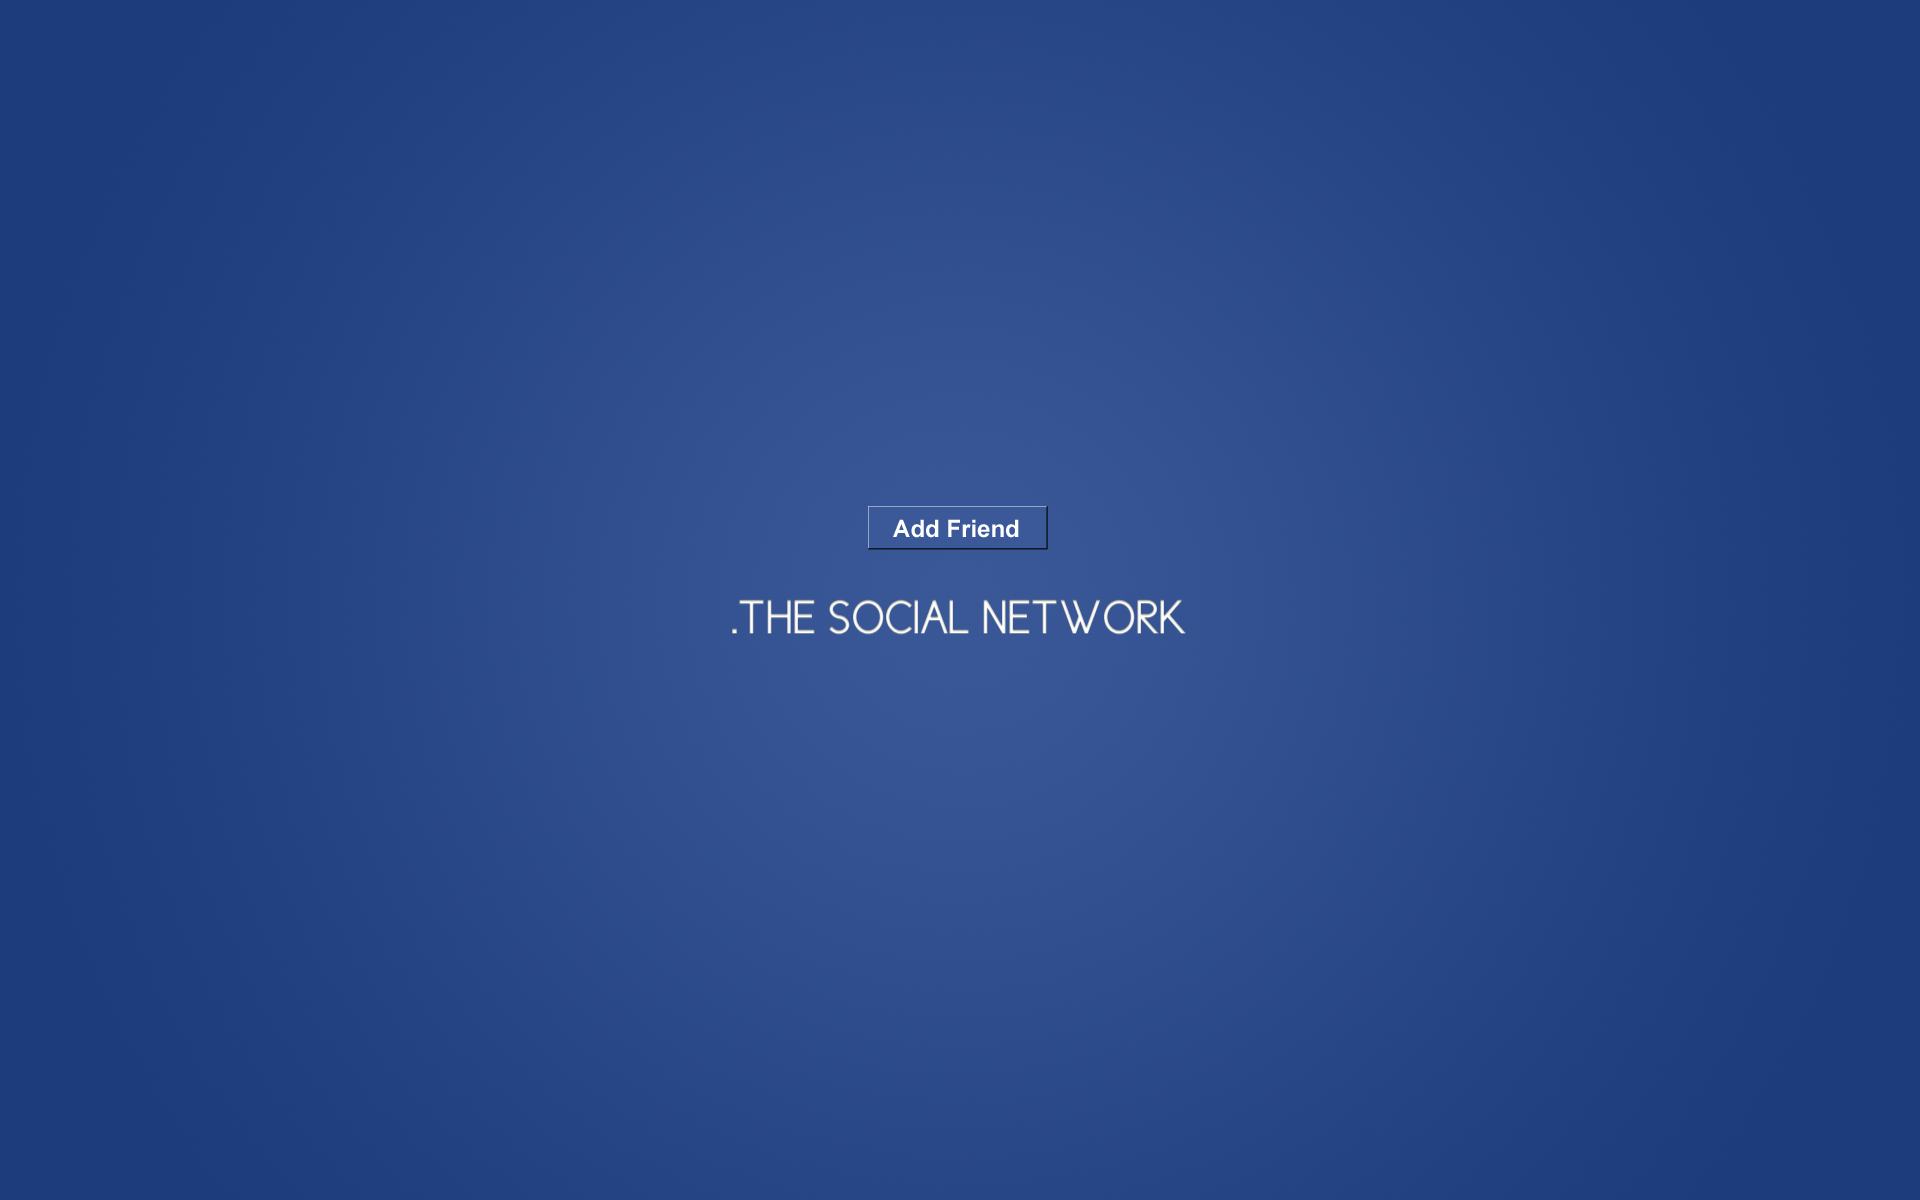 10 The Social Network HD Wallpapers | Backgrounds ...